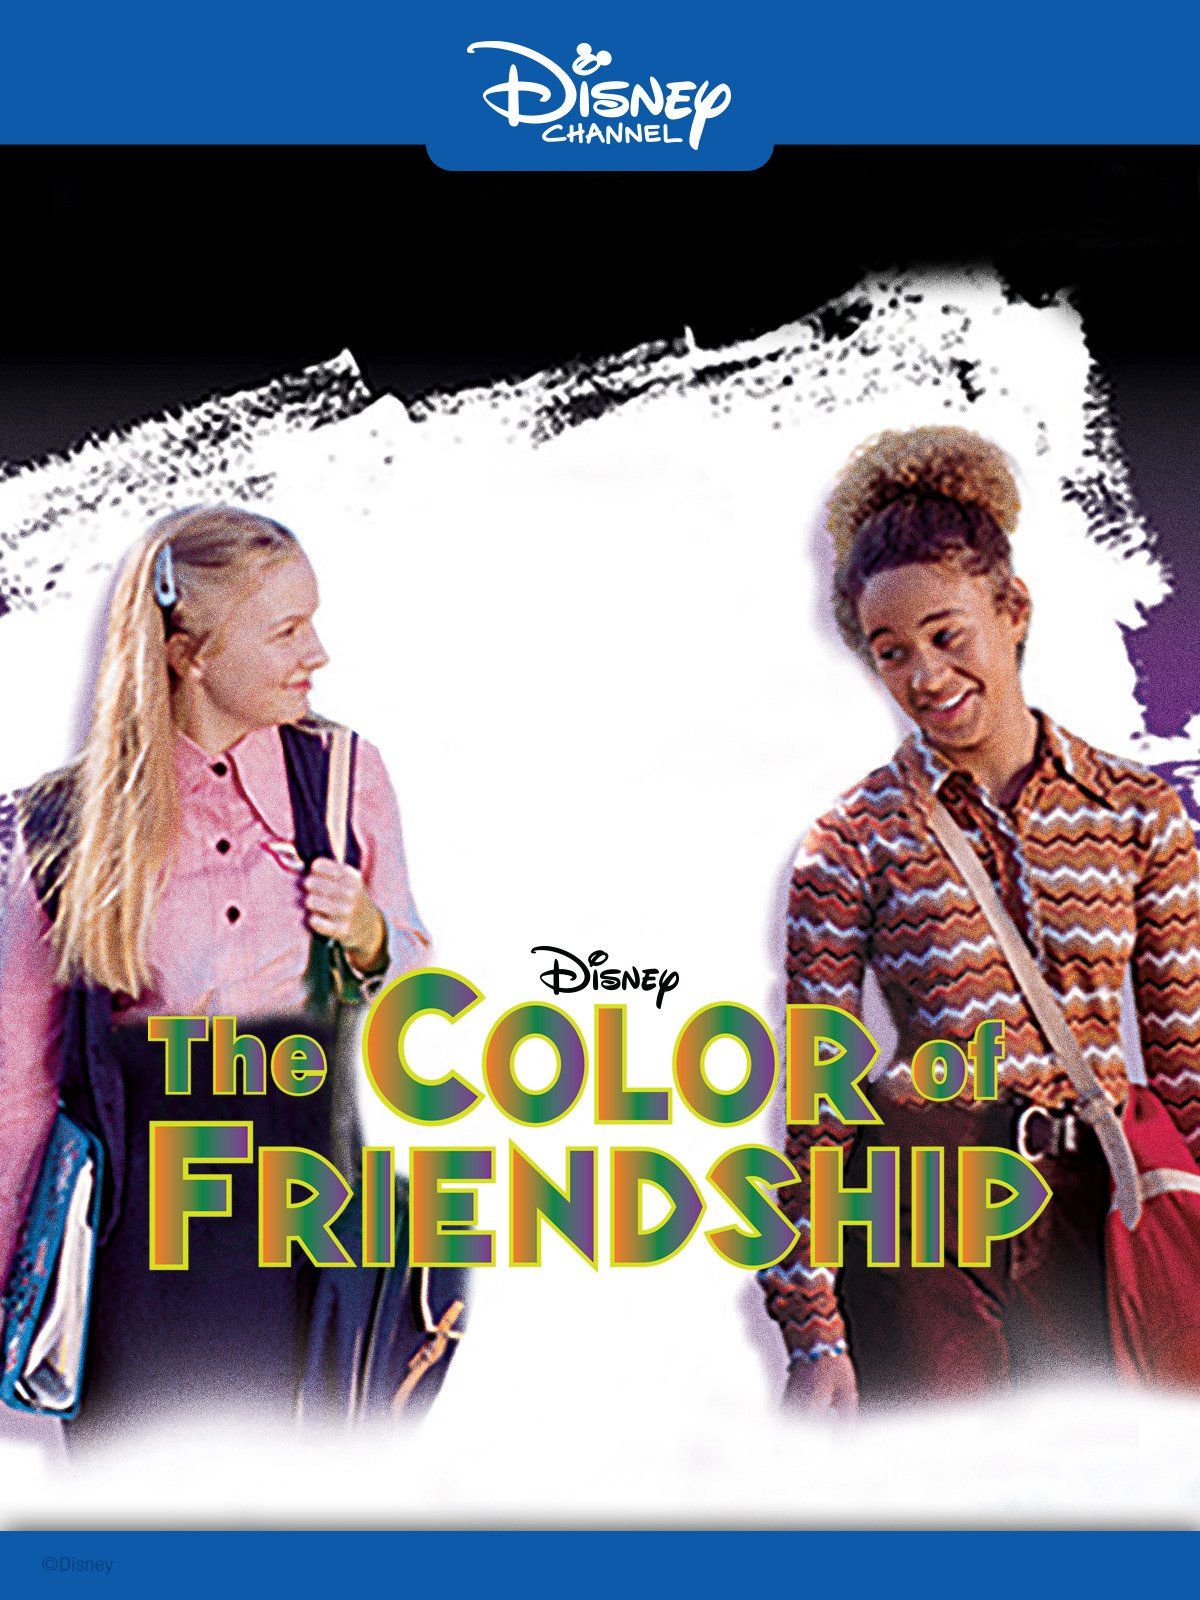 Amazon The Color of Friendship Amazon Digital Services LLC